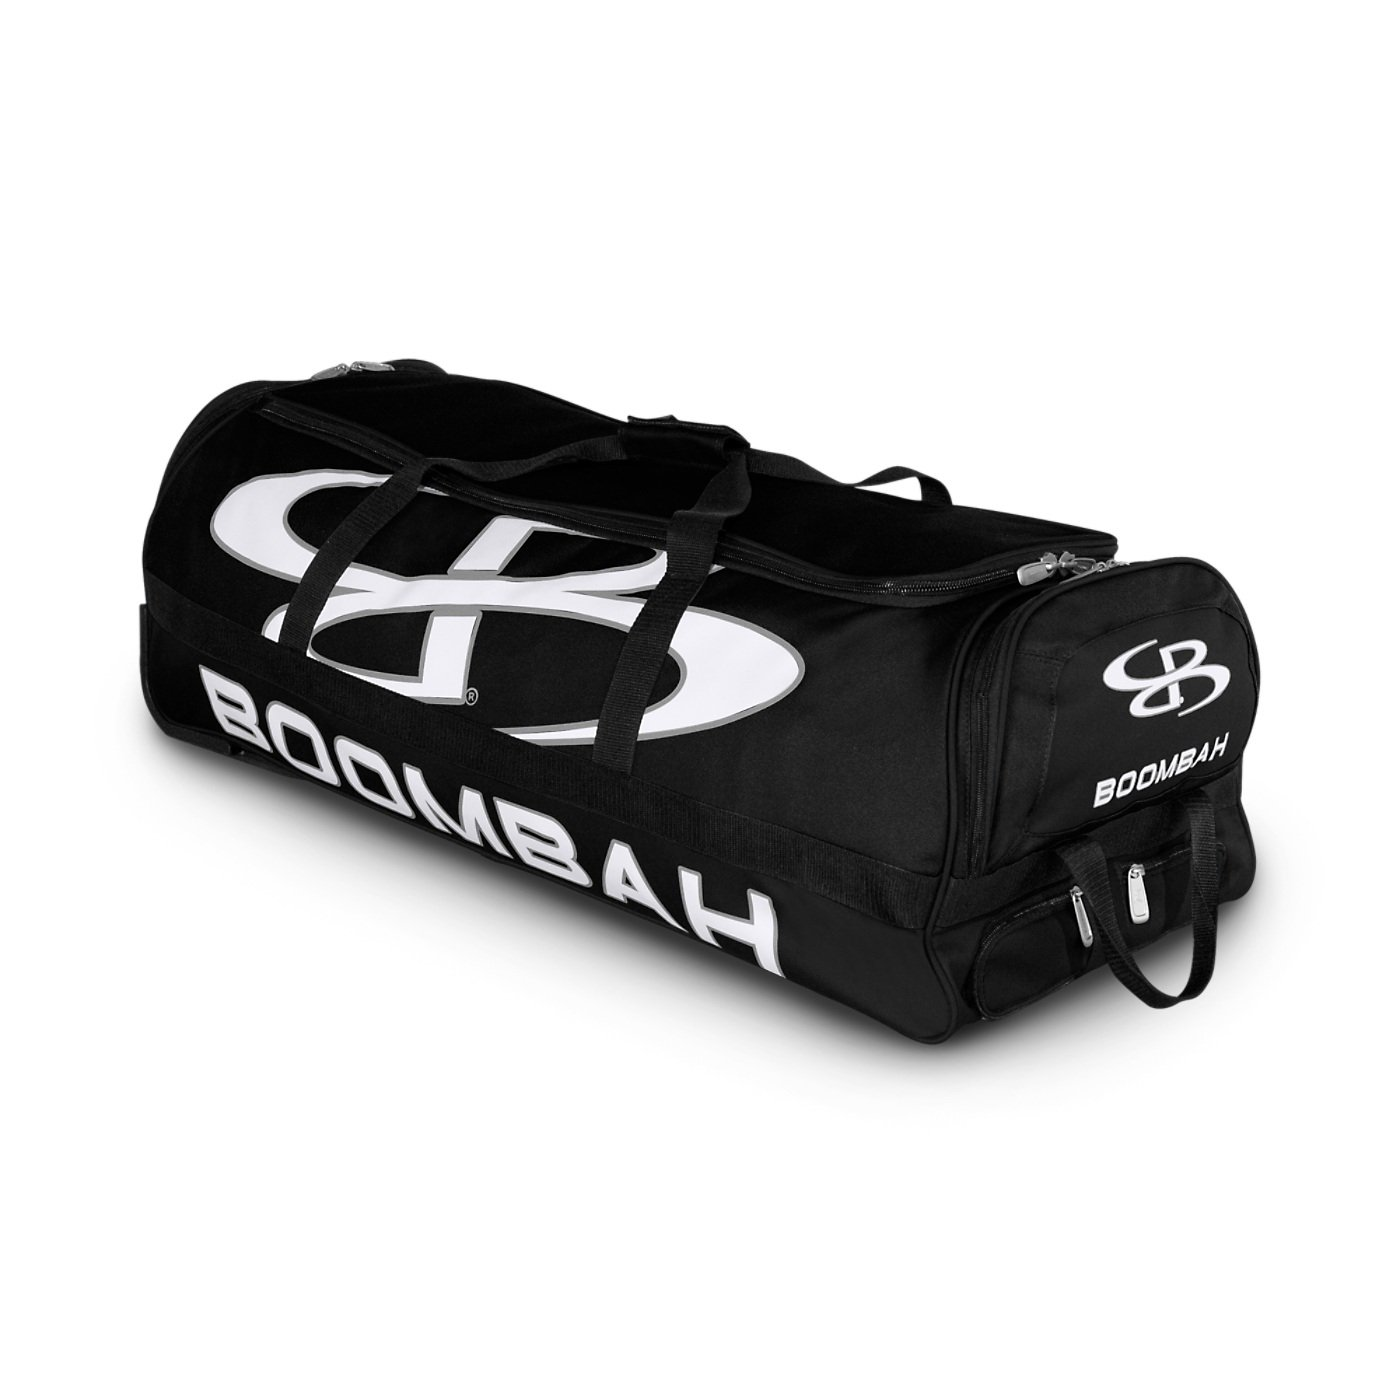 Boombah Brute Rolling Baseballsoftball Bat Bag 35 X 15 X 12 12 Holds 4 Bats And Room For Gear Wheeled Bag